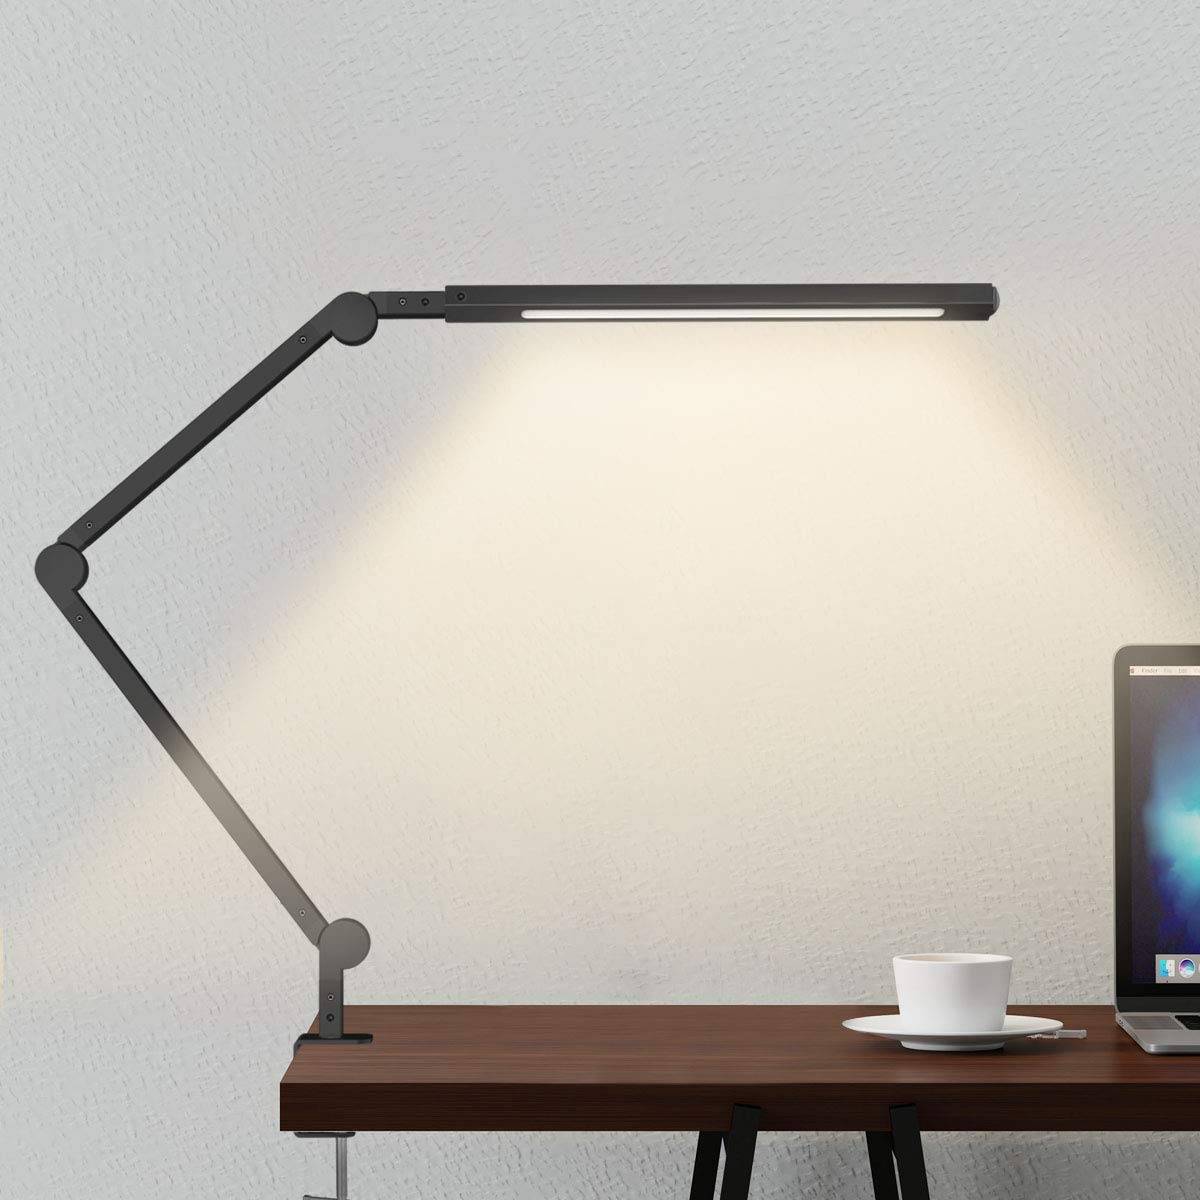 Swing Arm Lamp, LED Desk Lamp with Clamp